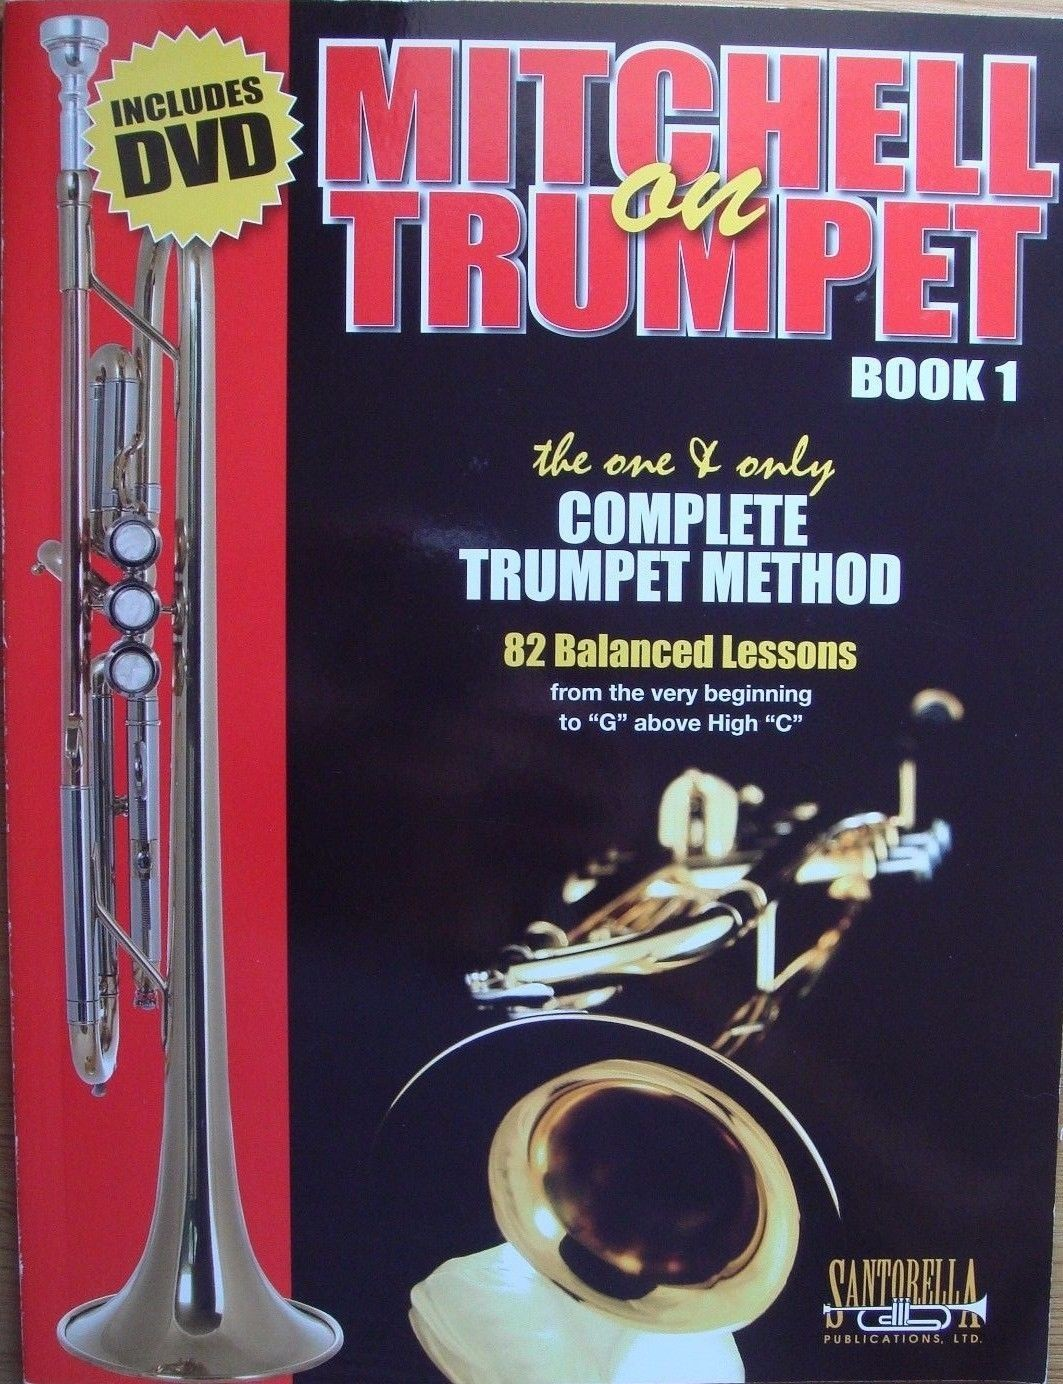 Mitchell On Trumpet Book 1 & DVD Tutor Complete Method Pub Santorella B21 S147